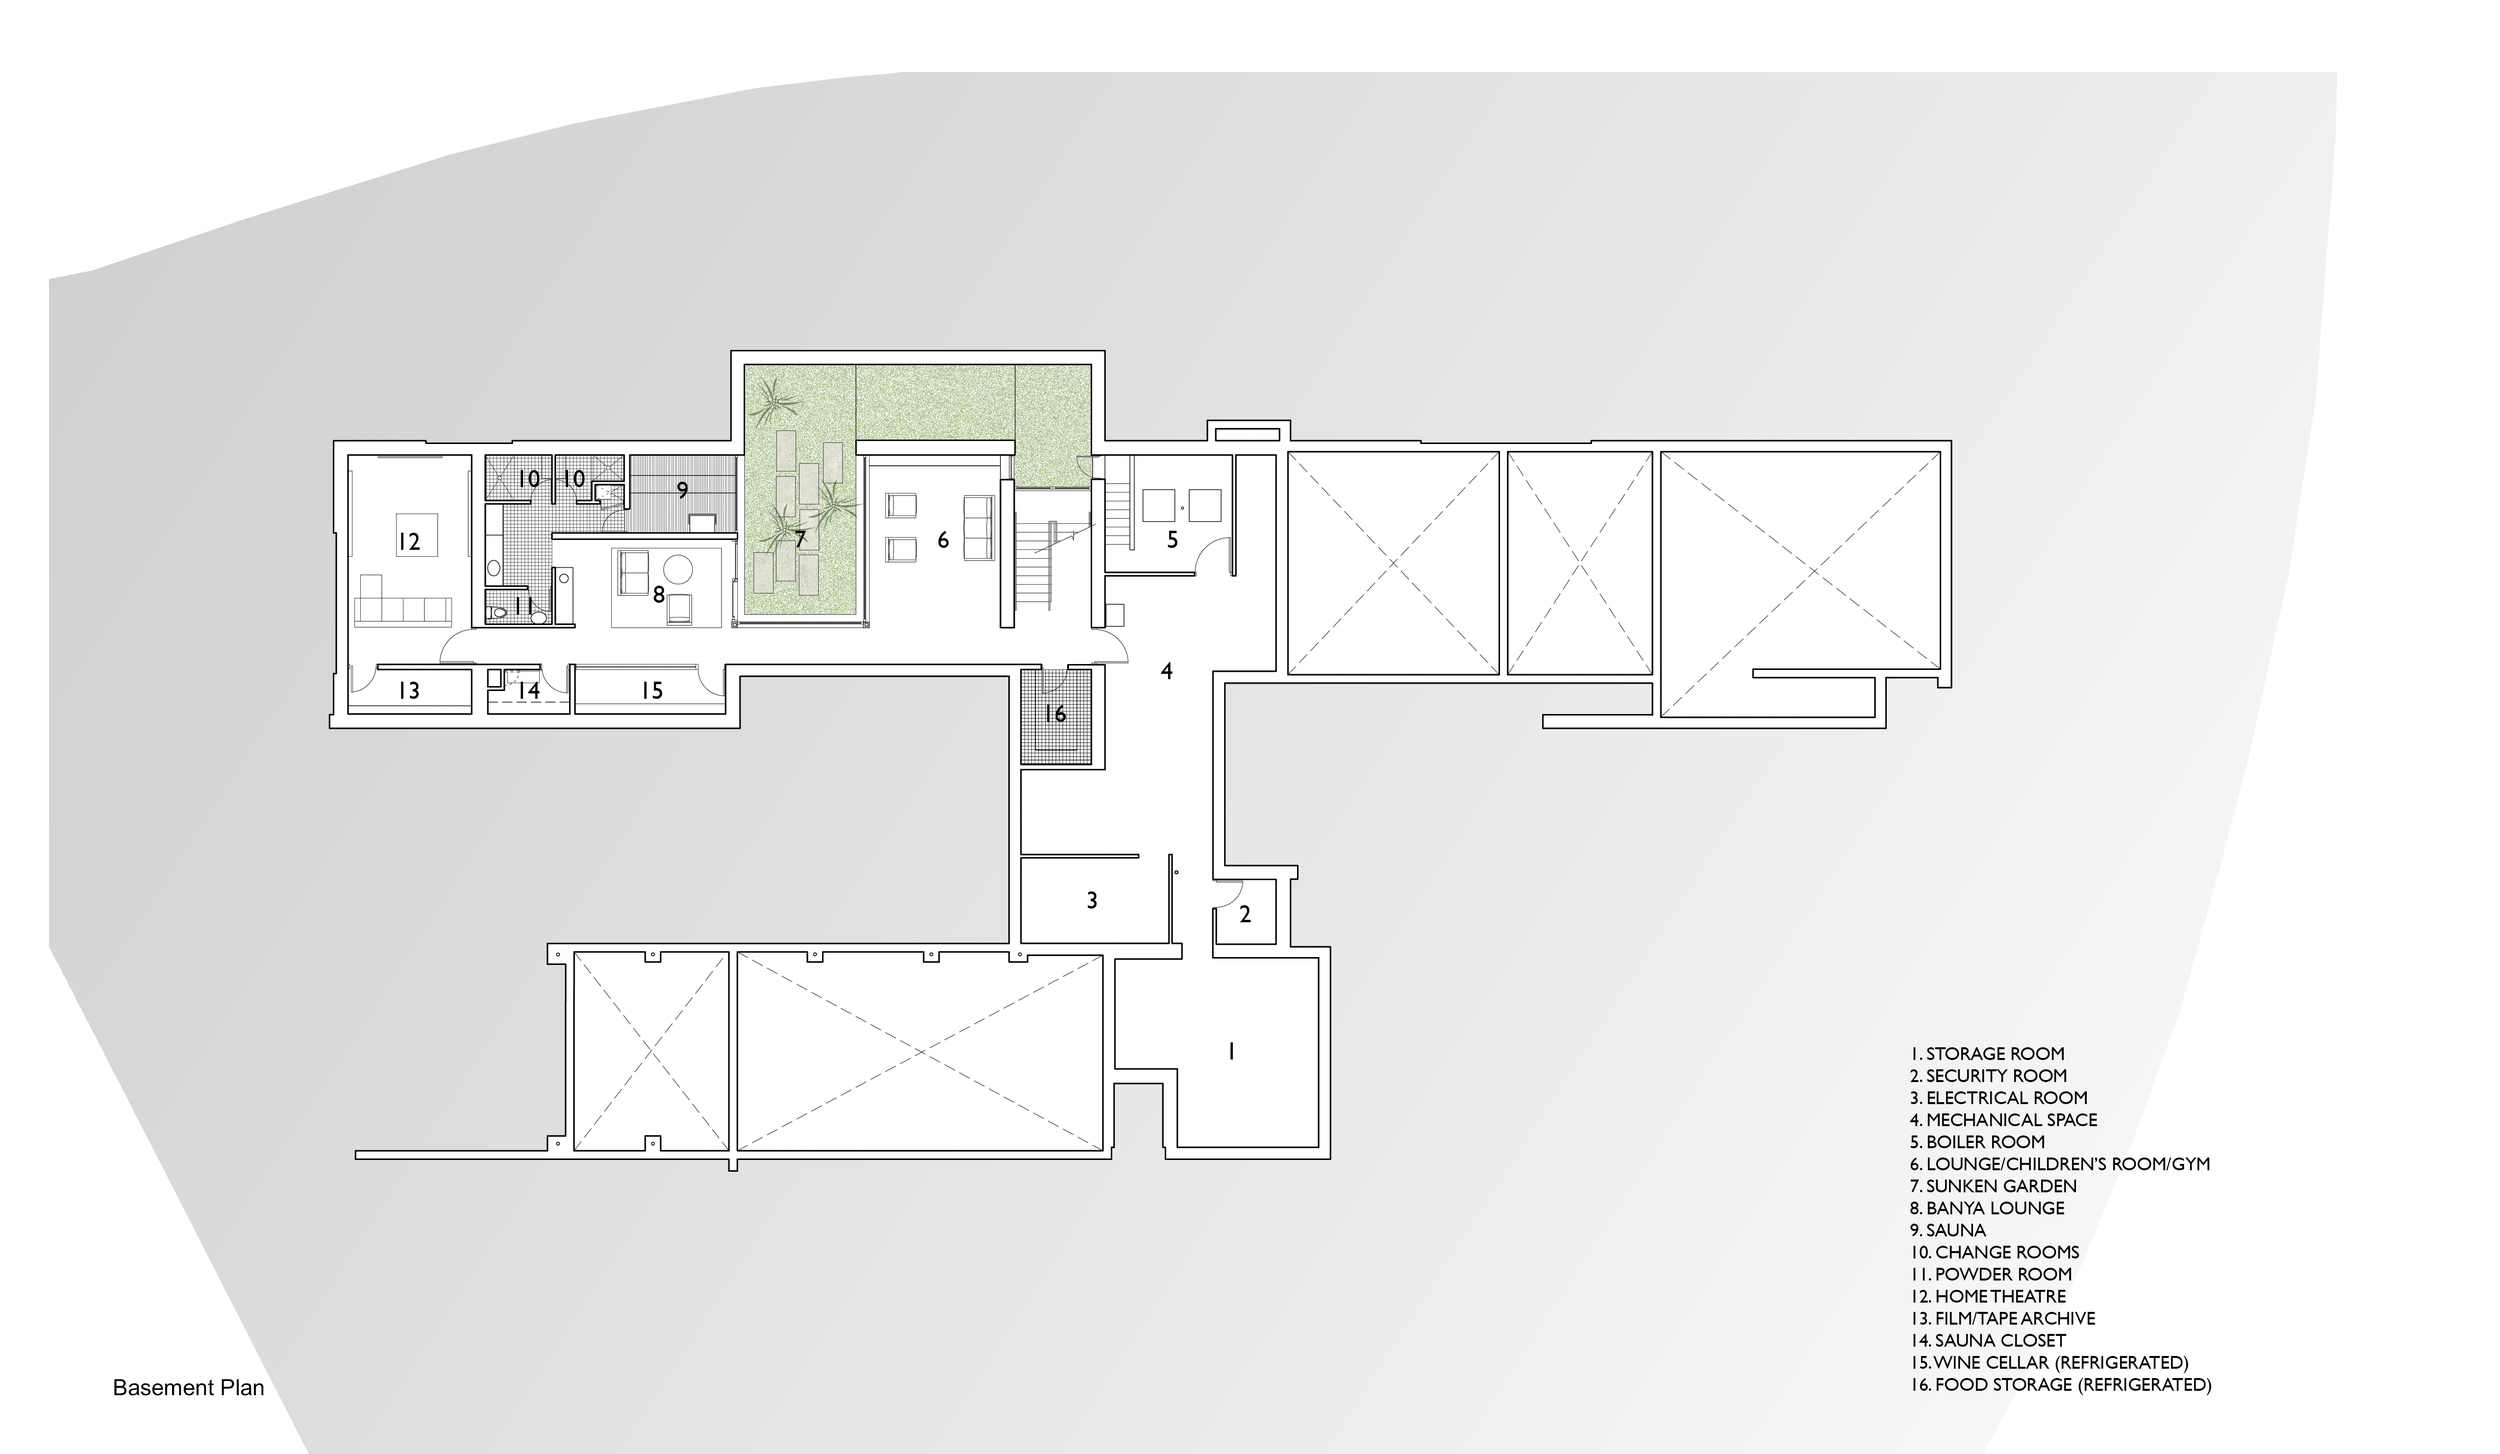 Basement Plan | Russia House | Jennifer Turner Architect